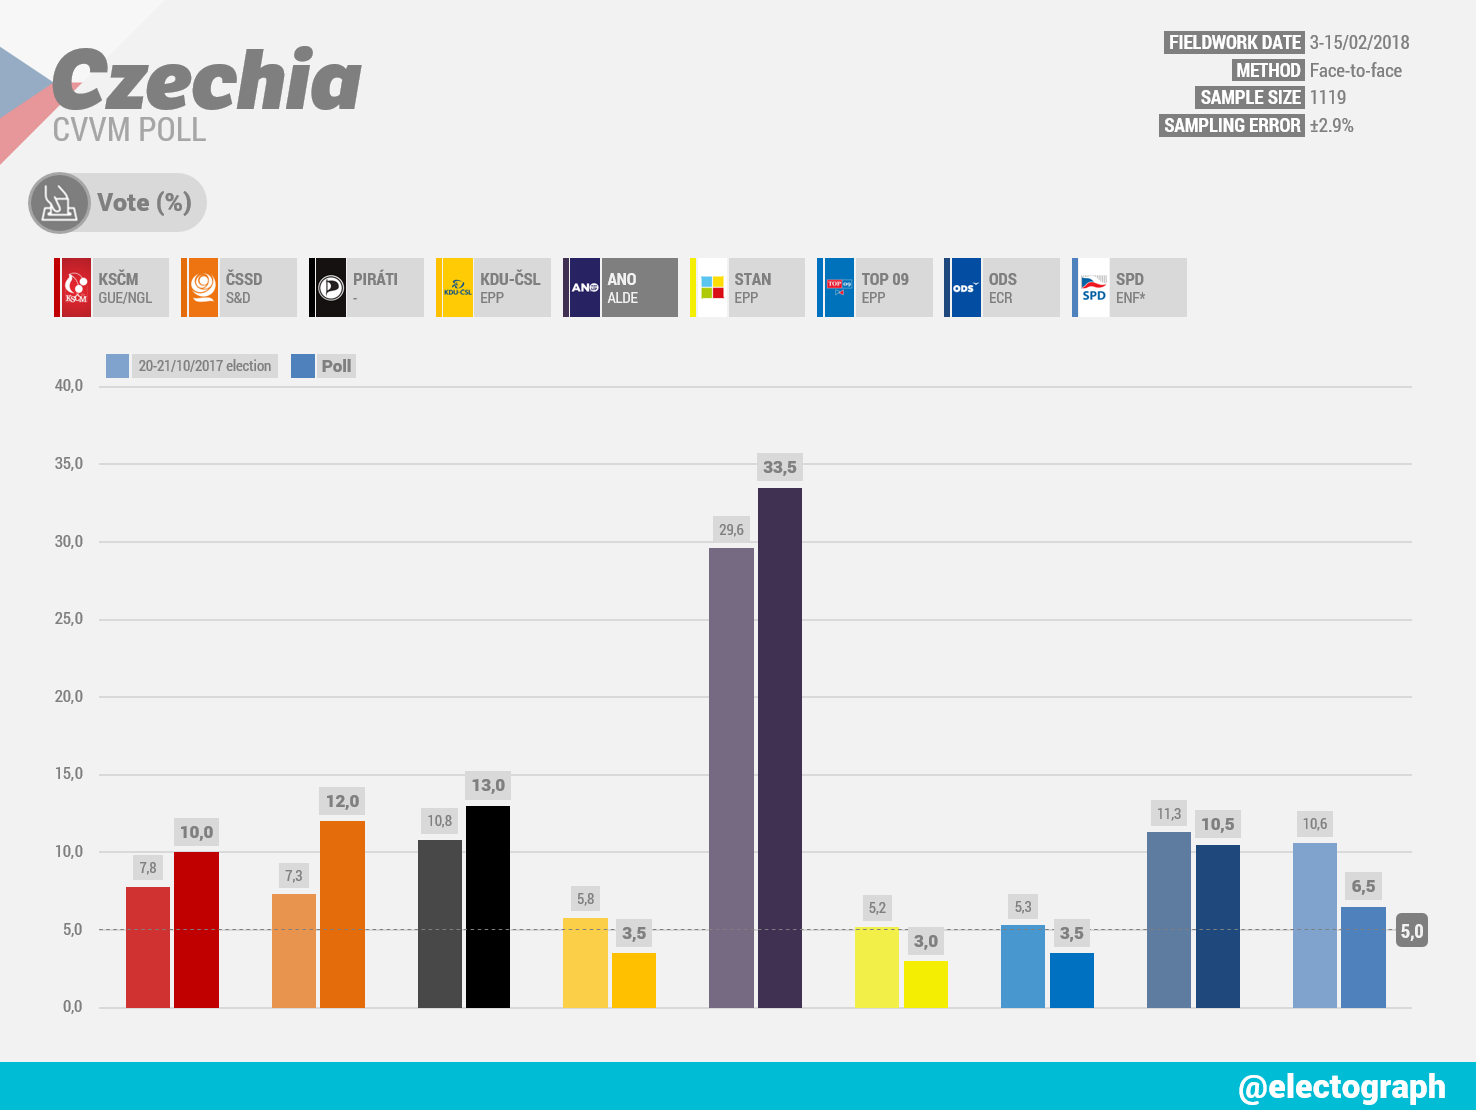 CZECHIA CVVM poll chart, February 2018